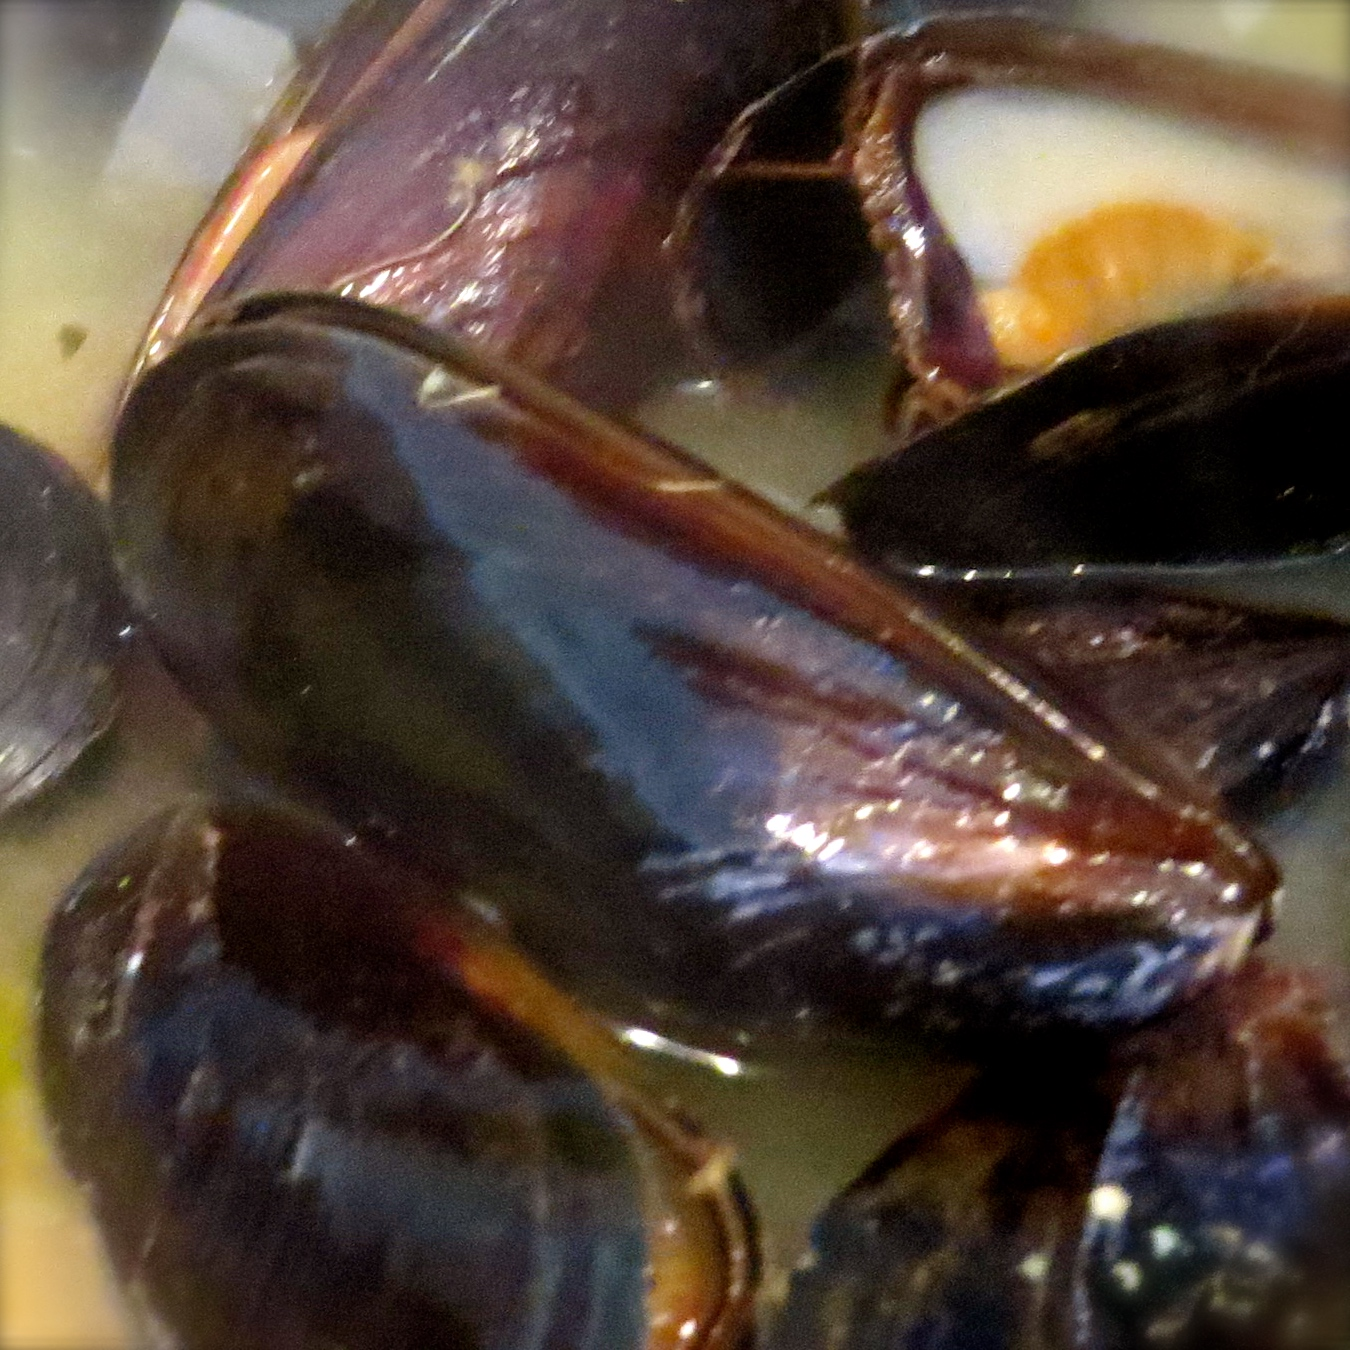 The mussels are put into the fish mixture at the last 2-4 minutes. Discard any closed mussels before serving.